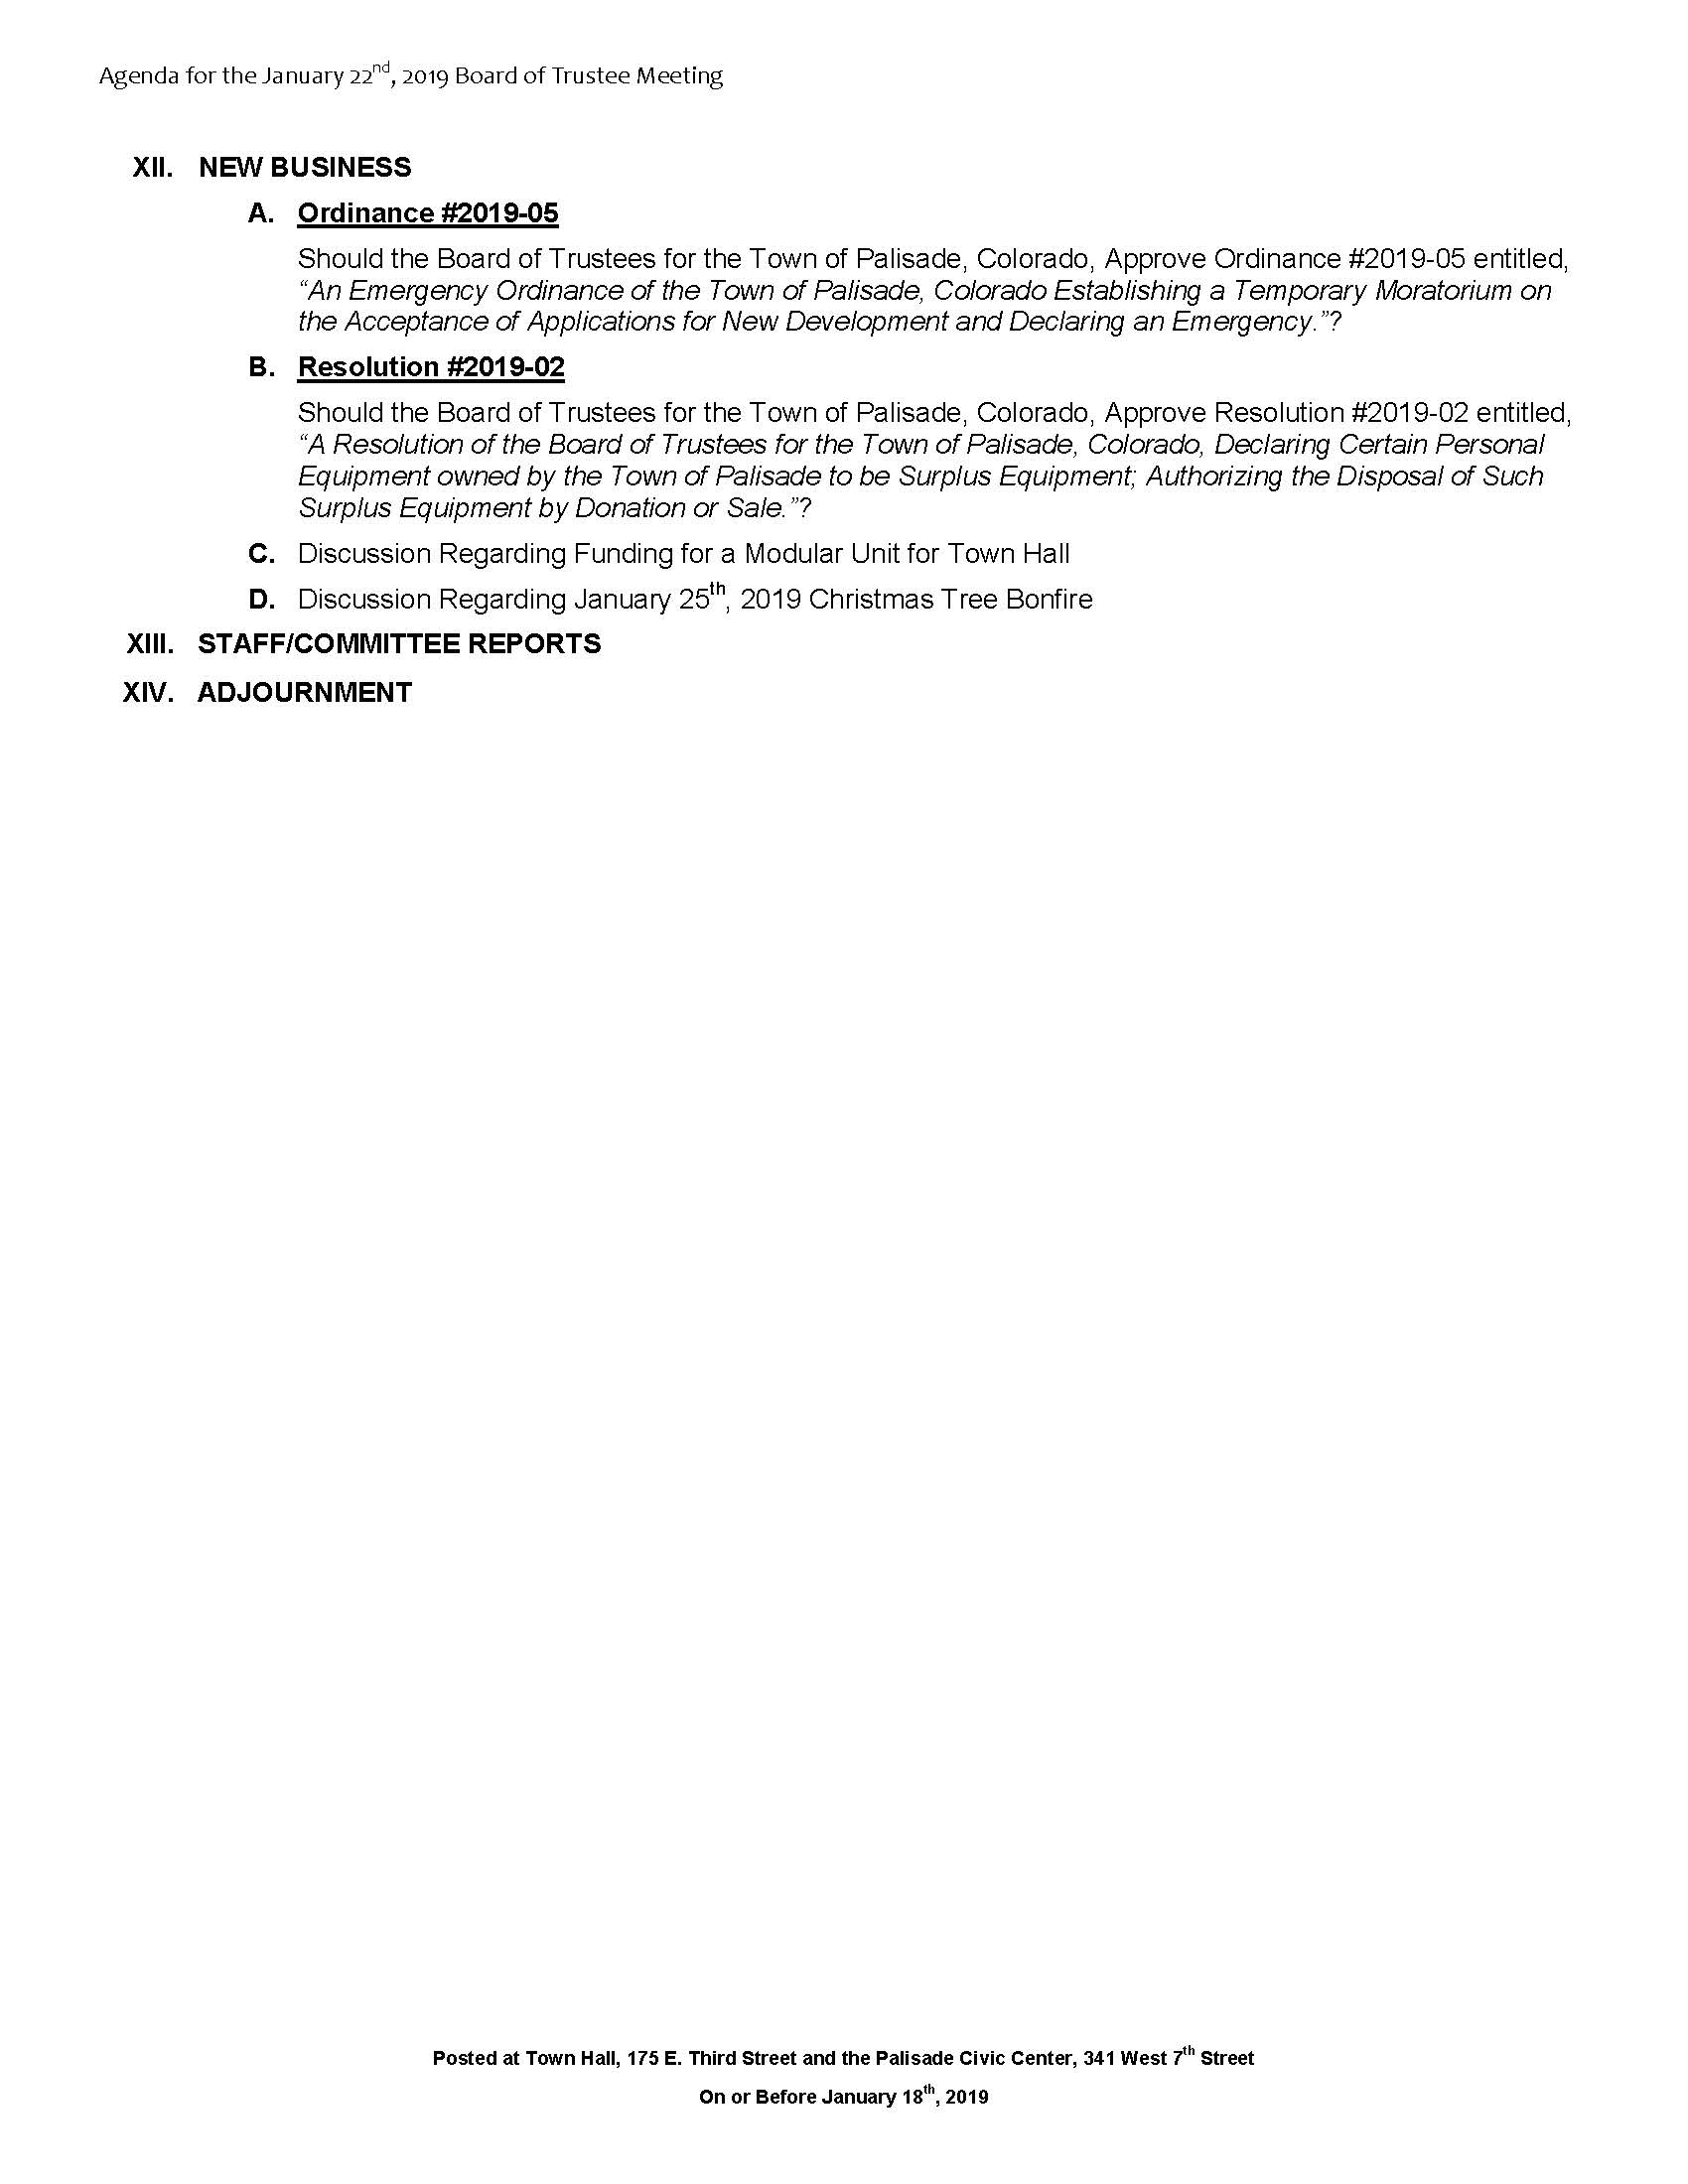 January 22nd 2019 Board Meeting Agenda Page 2